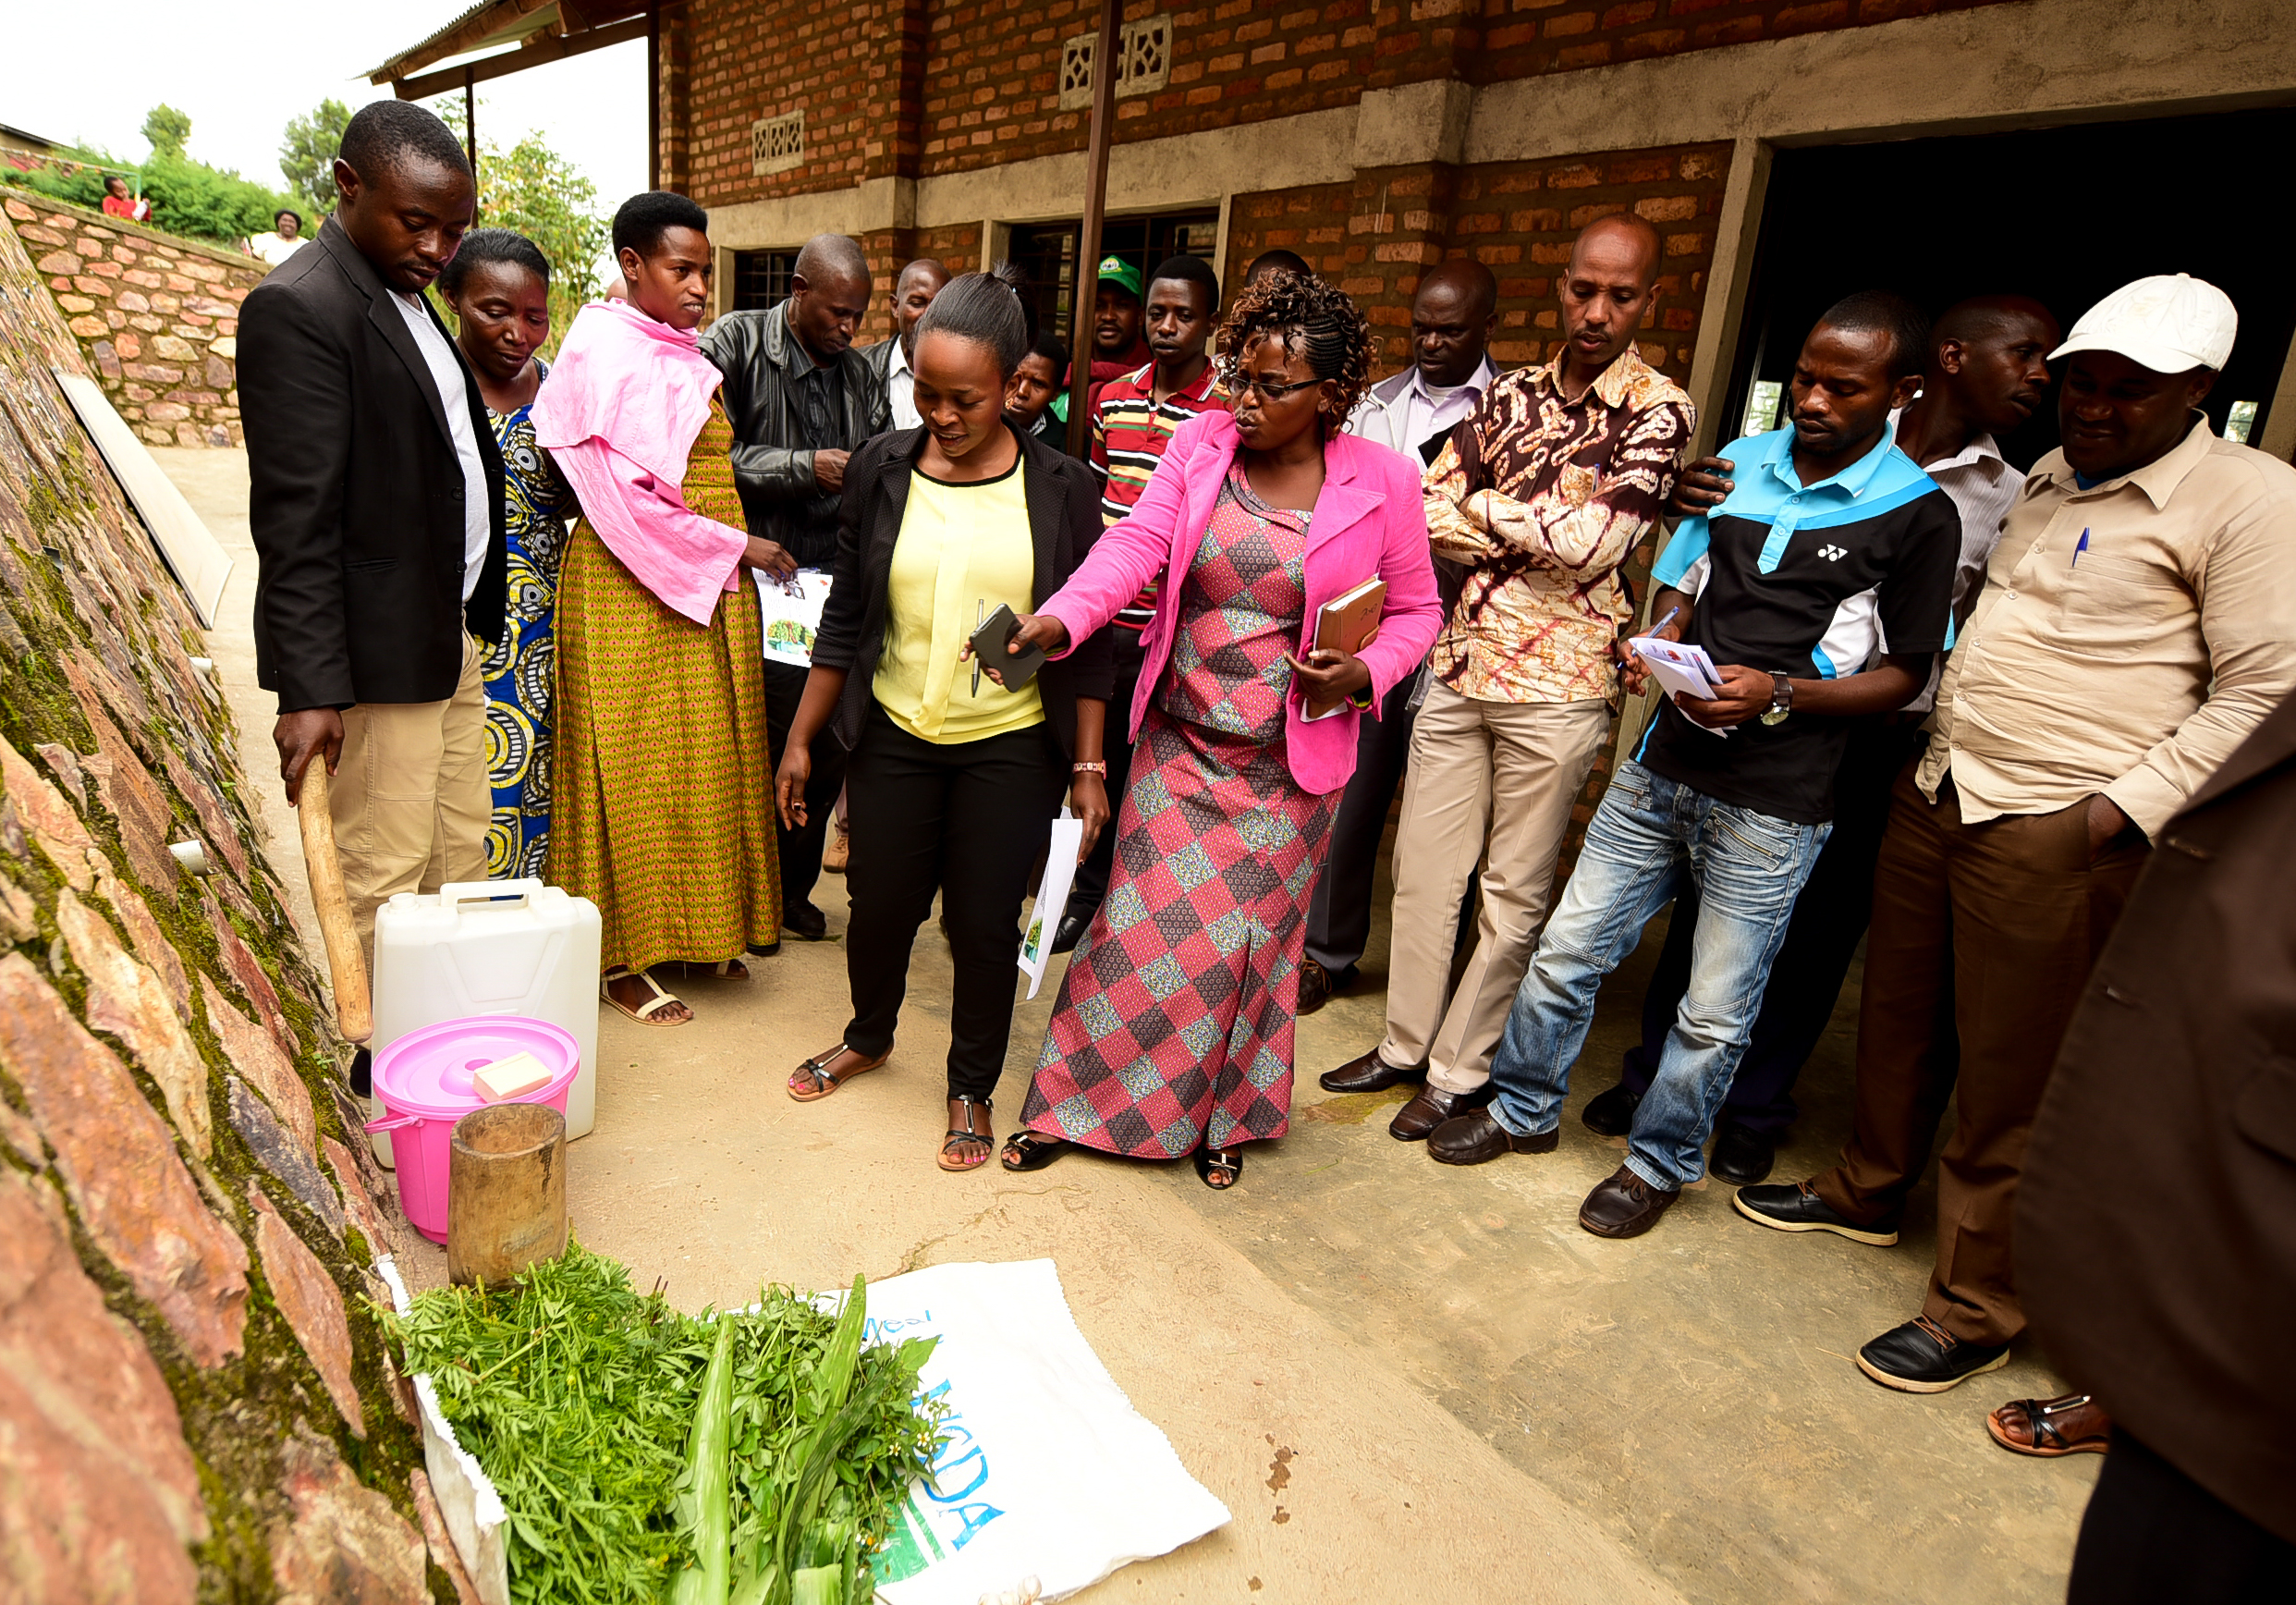 GHI Farm Manager Denyse teaches the steps of making a homemade Pili Pili pesticide.